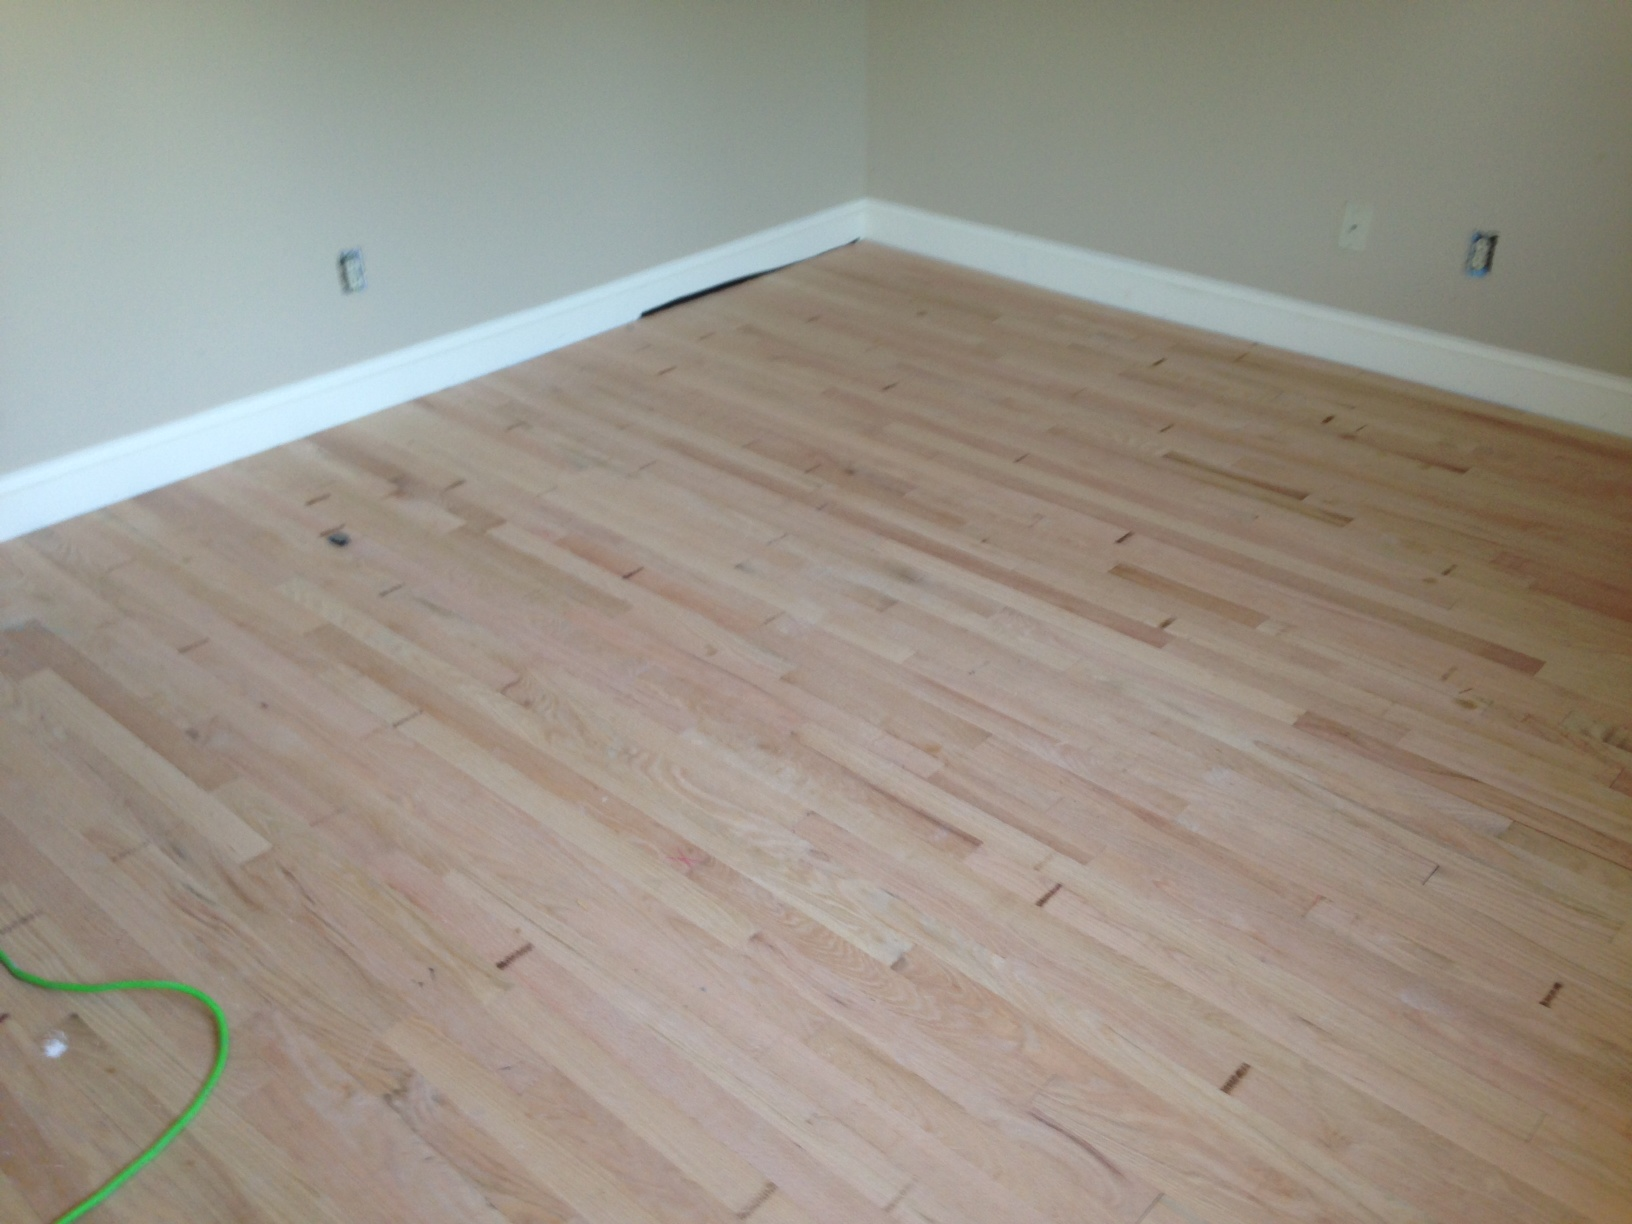 New hardwood floors wood floor refinishing epping forest for Hardwood floors popping